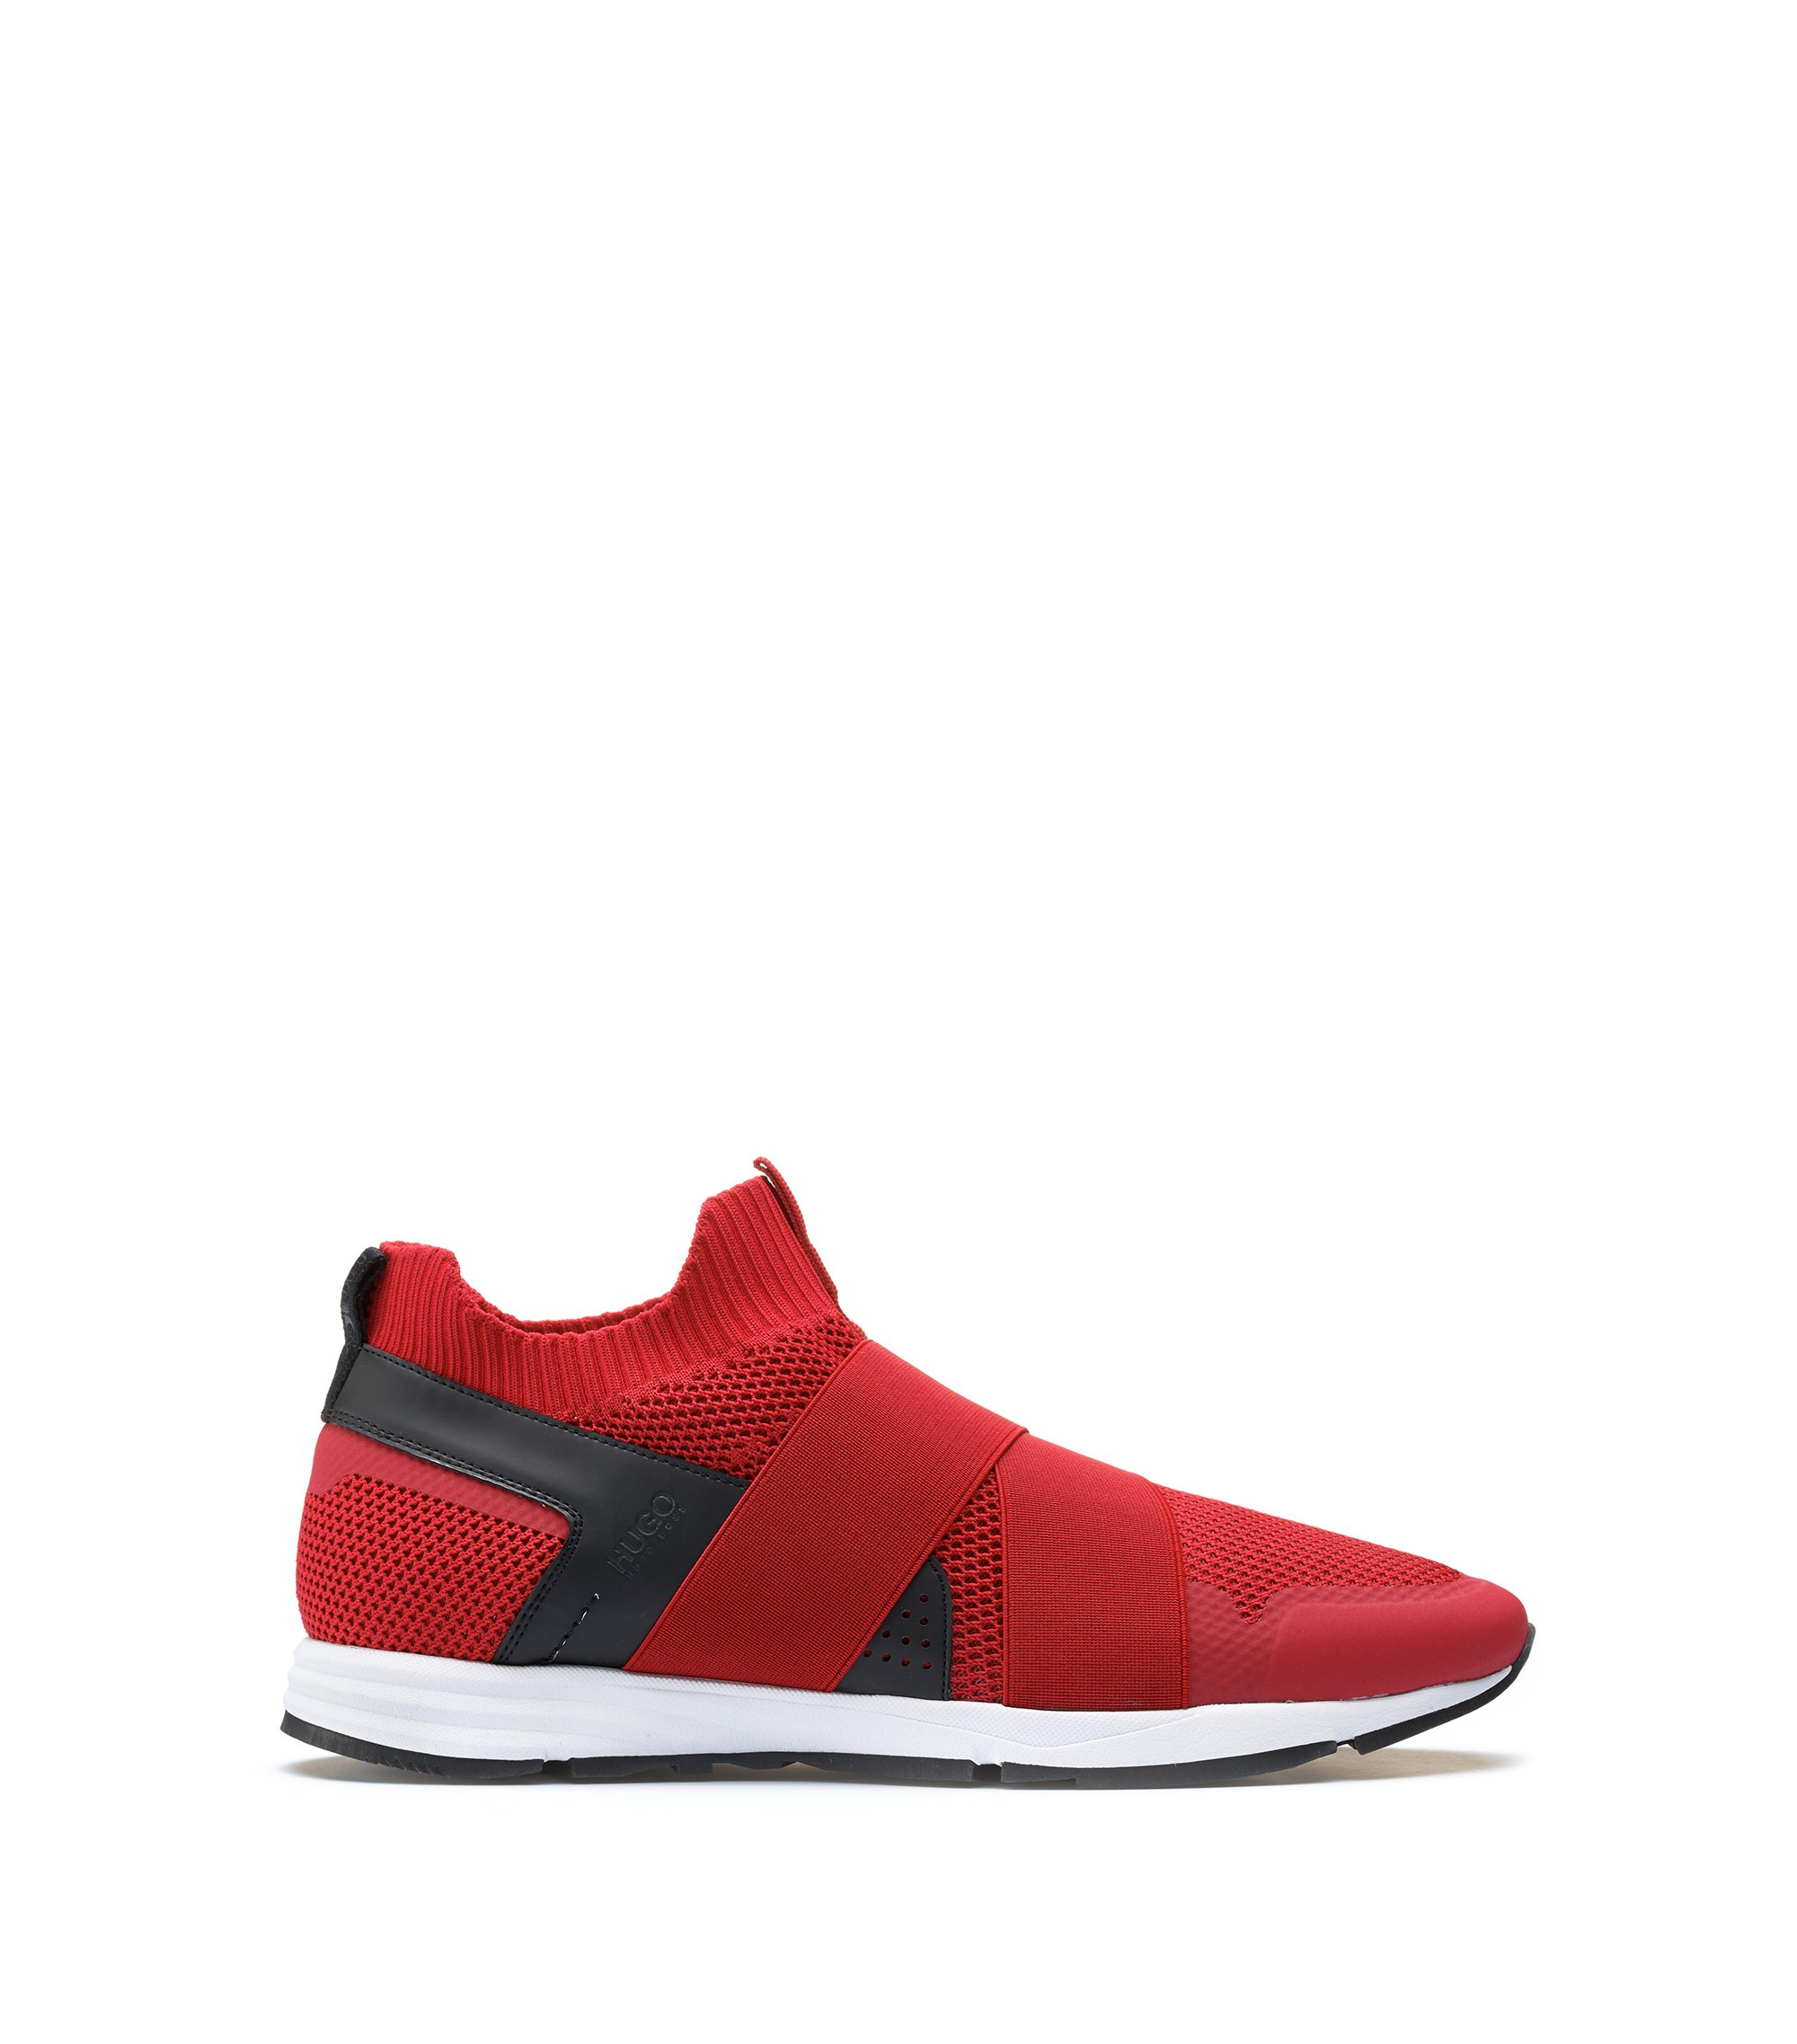 Slip-on hybrid sneakers with Vibram sole, Dark Red